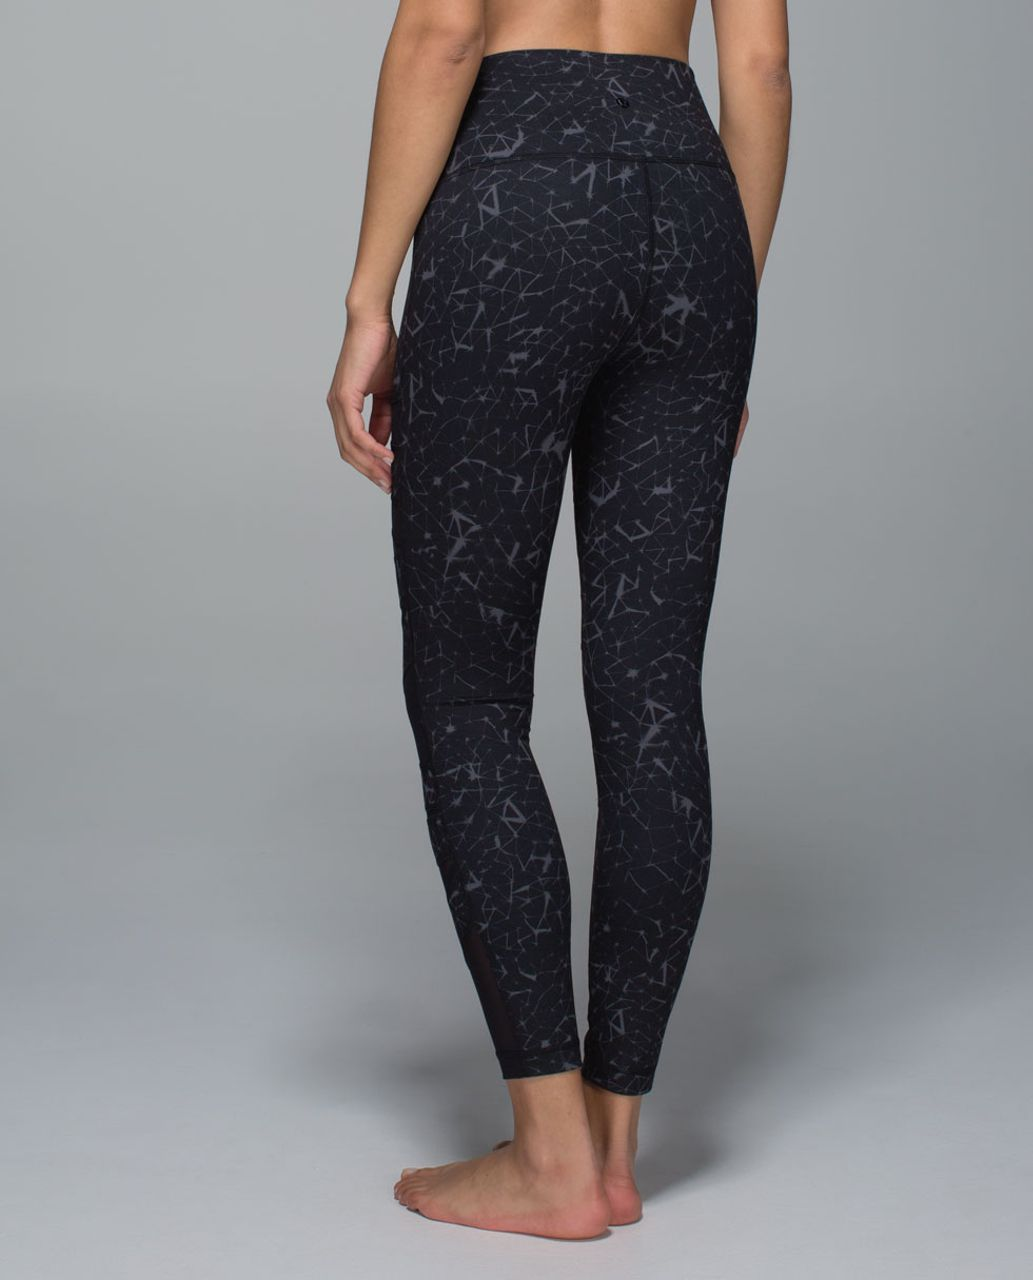 73e6aa289a828c Lululemon High Times Pant *Full-On Luon (Mesh) - Star Crushed Coal ...